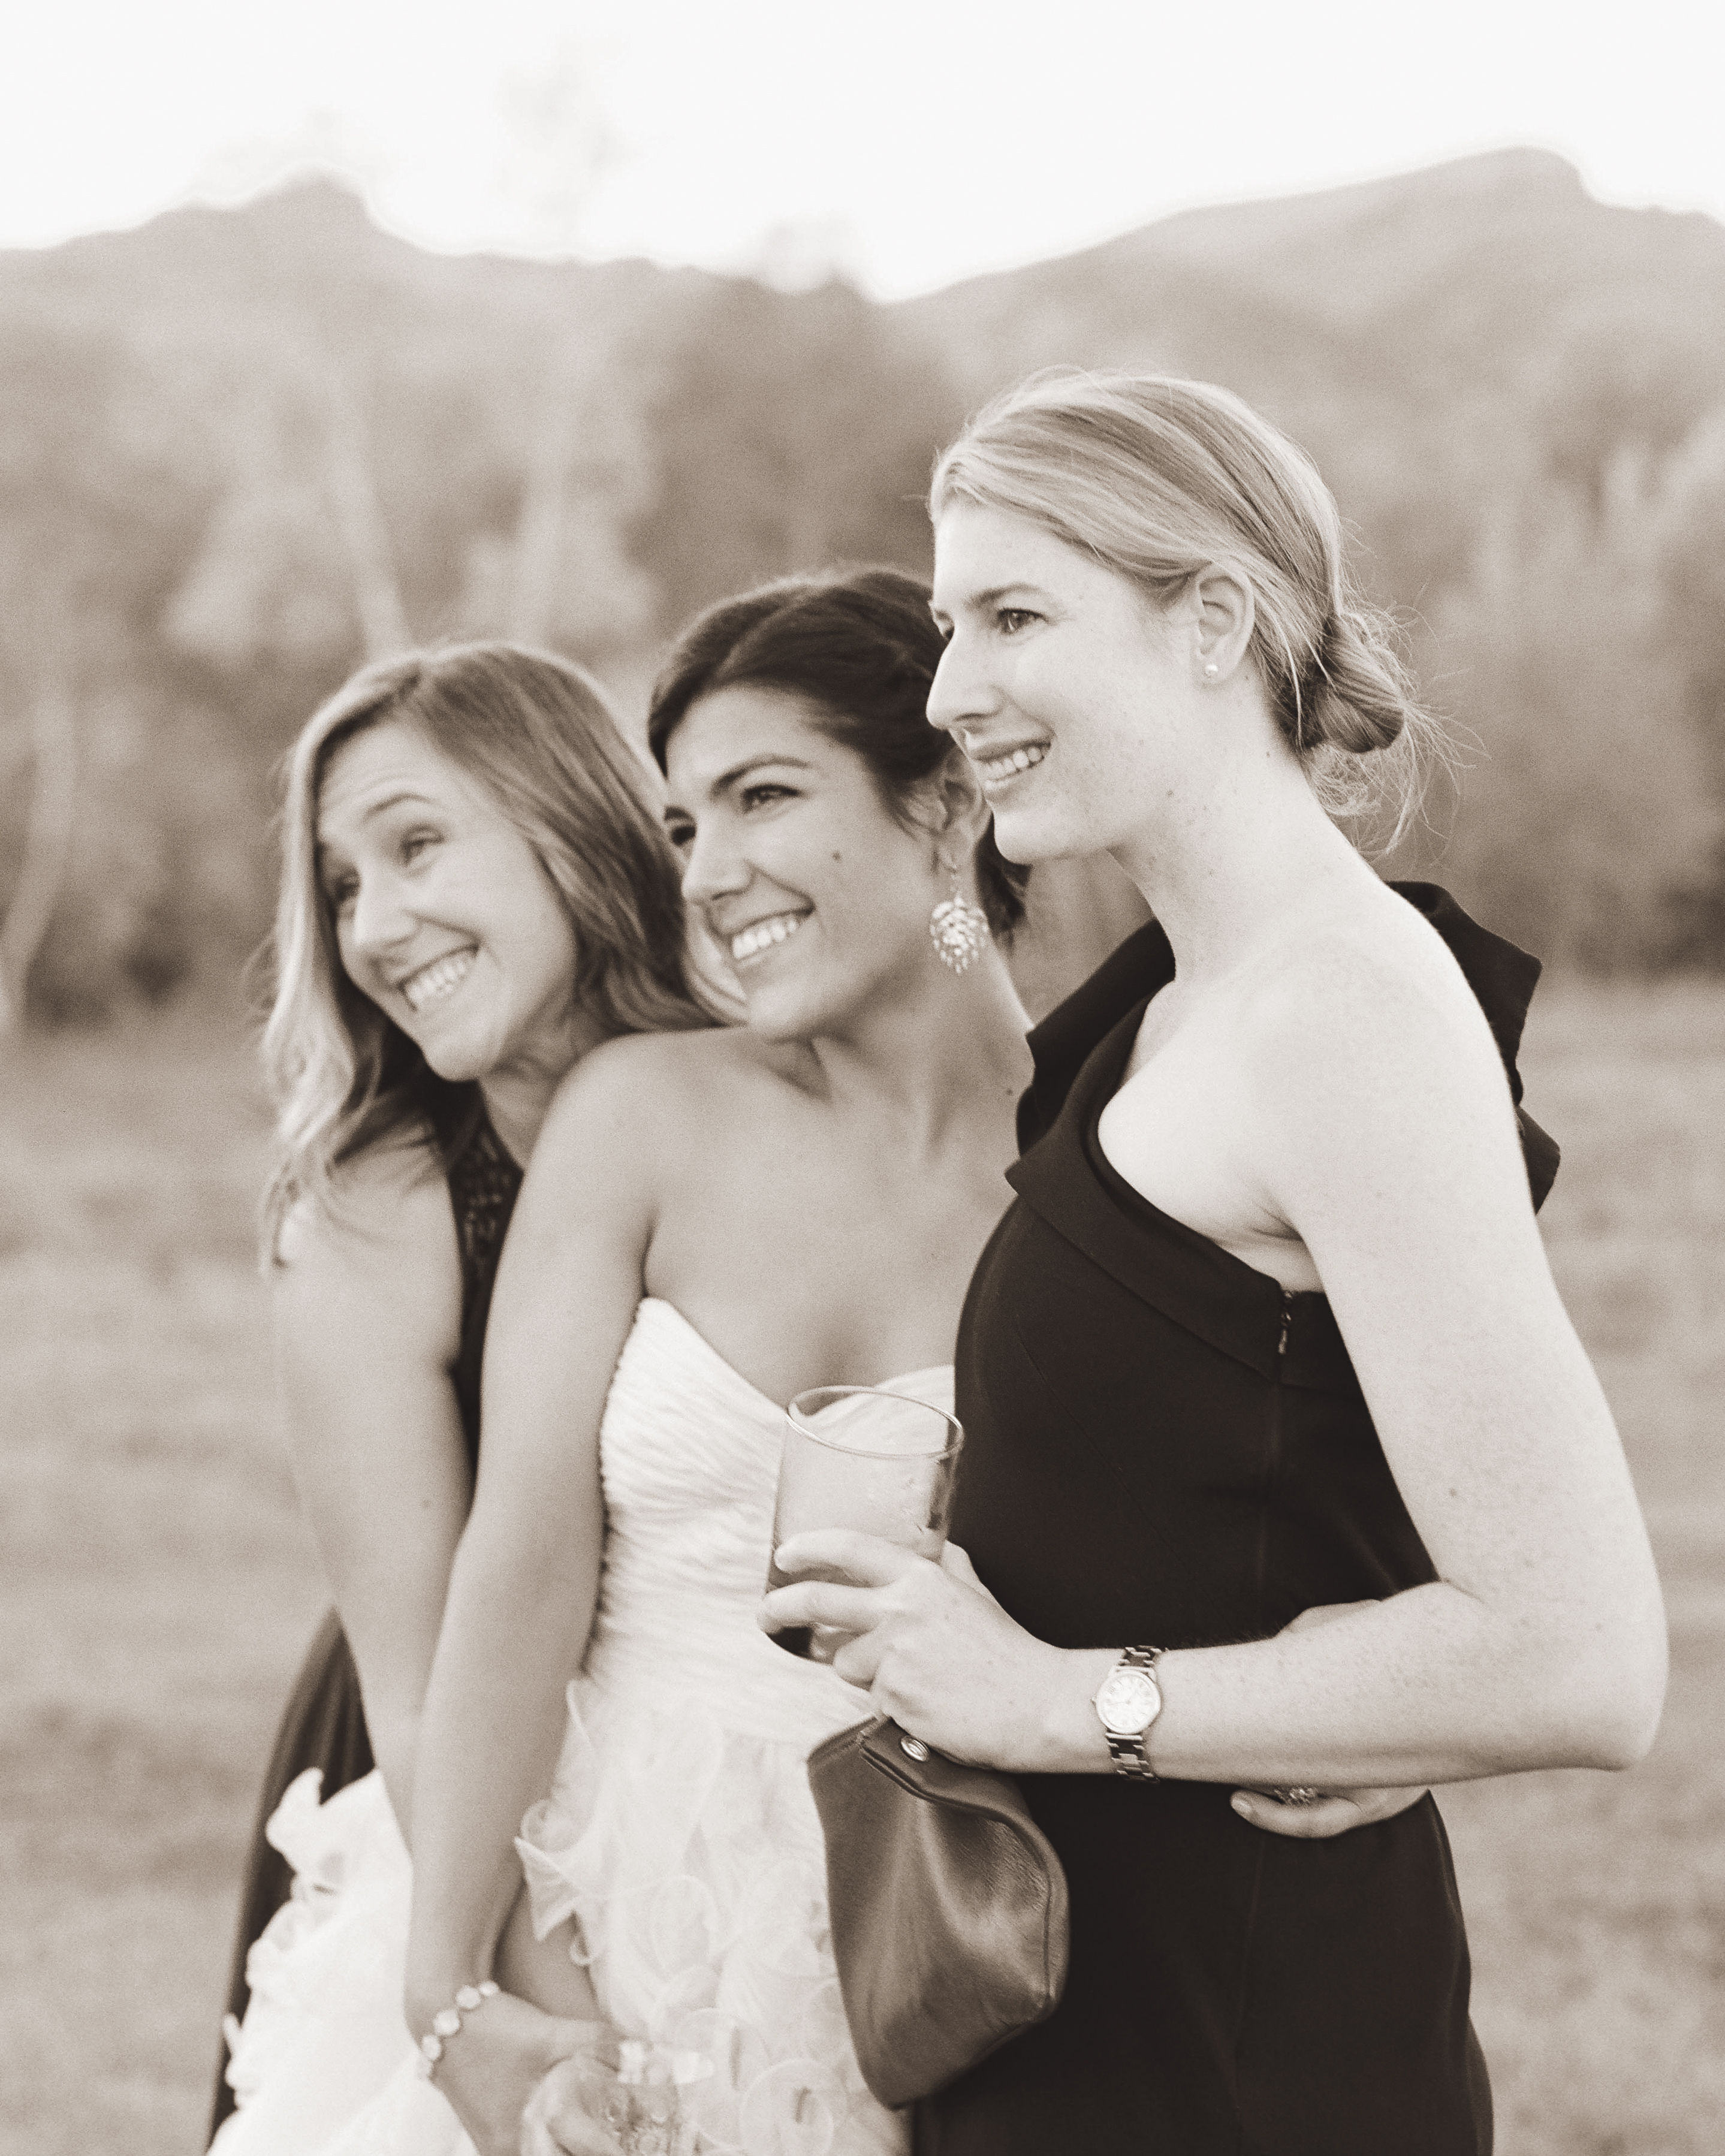 ali-andrew-wedding-wyoming-215-s111942-bw.jpg